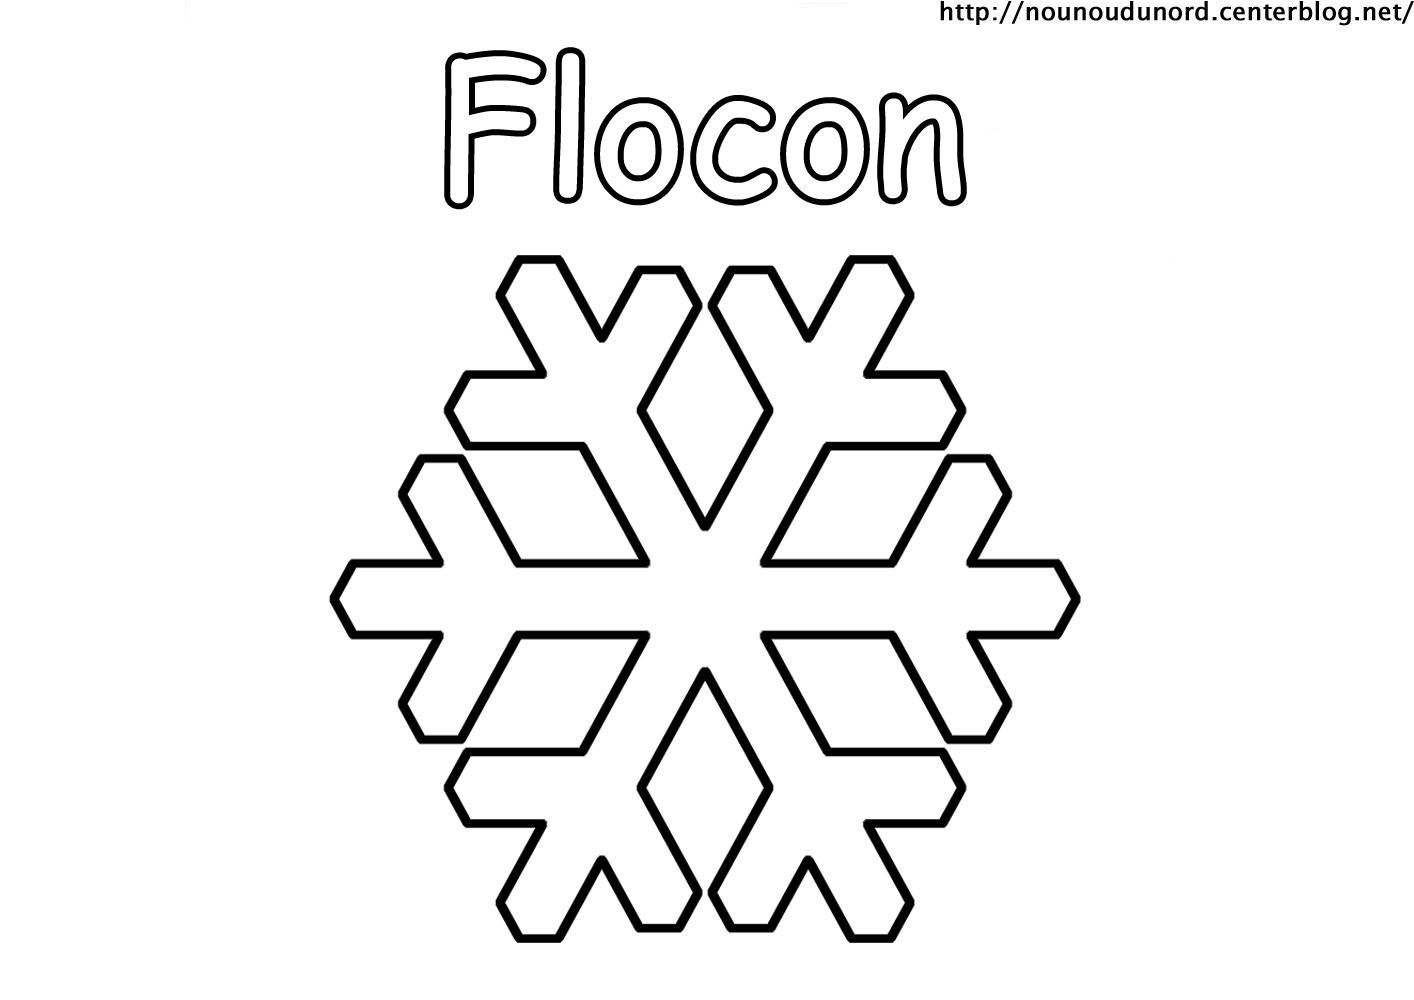 Charmant Coloriage Flocons 61 Dans Coloriage Inspiration for Coloriage Flocons